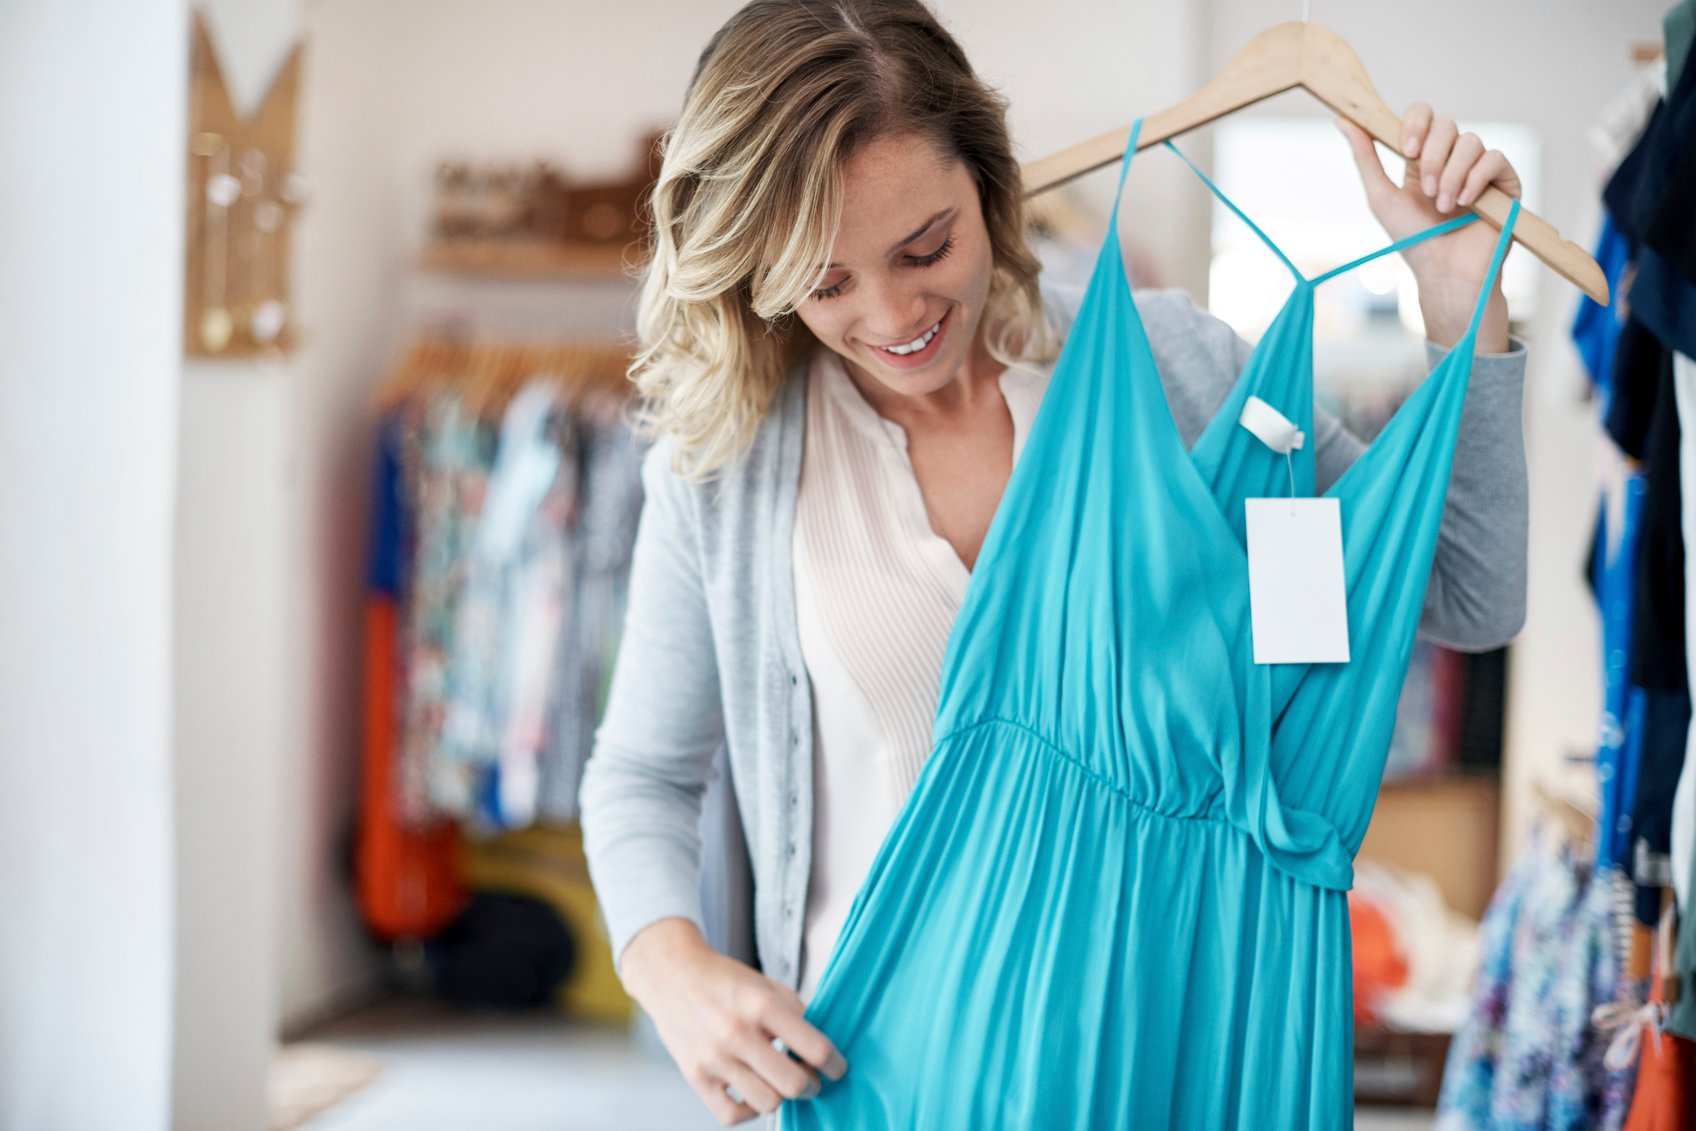 234039f9924 5 Tips for Selling Clothes Online - NerdWallet